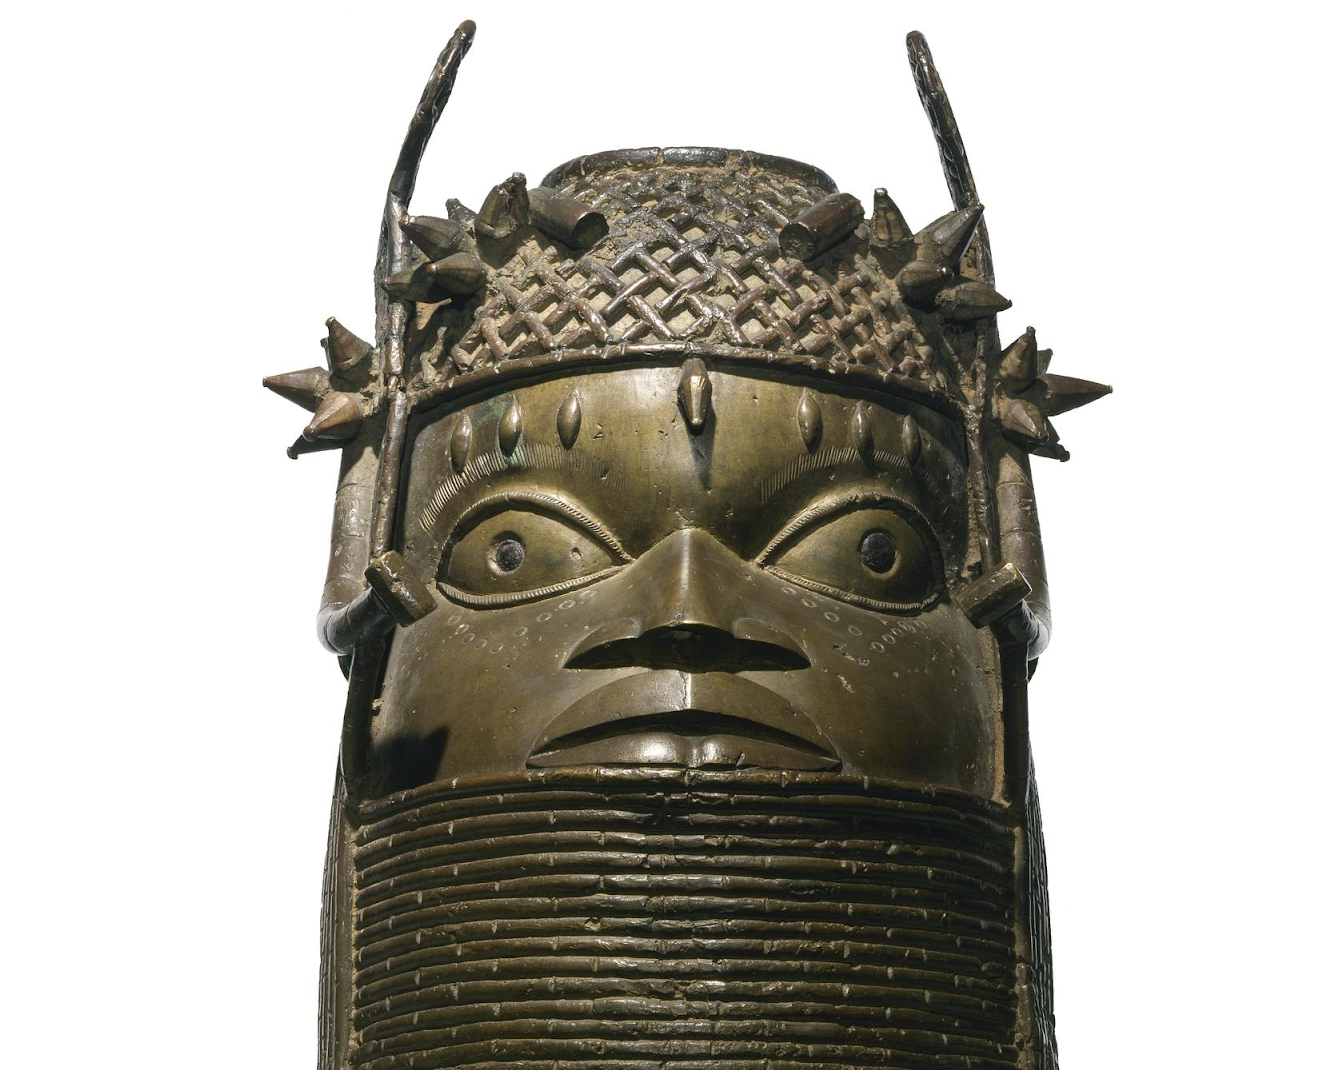 Bronze commemorative Oba head sculpture from Benin City, 19th century. Image © National Museums Scotland.